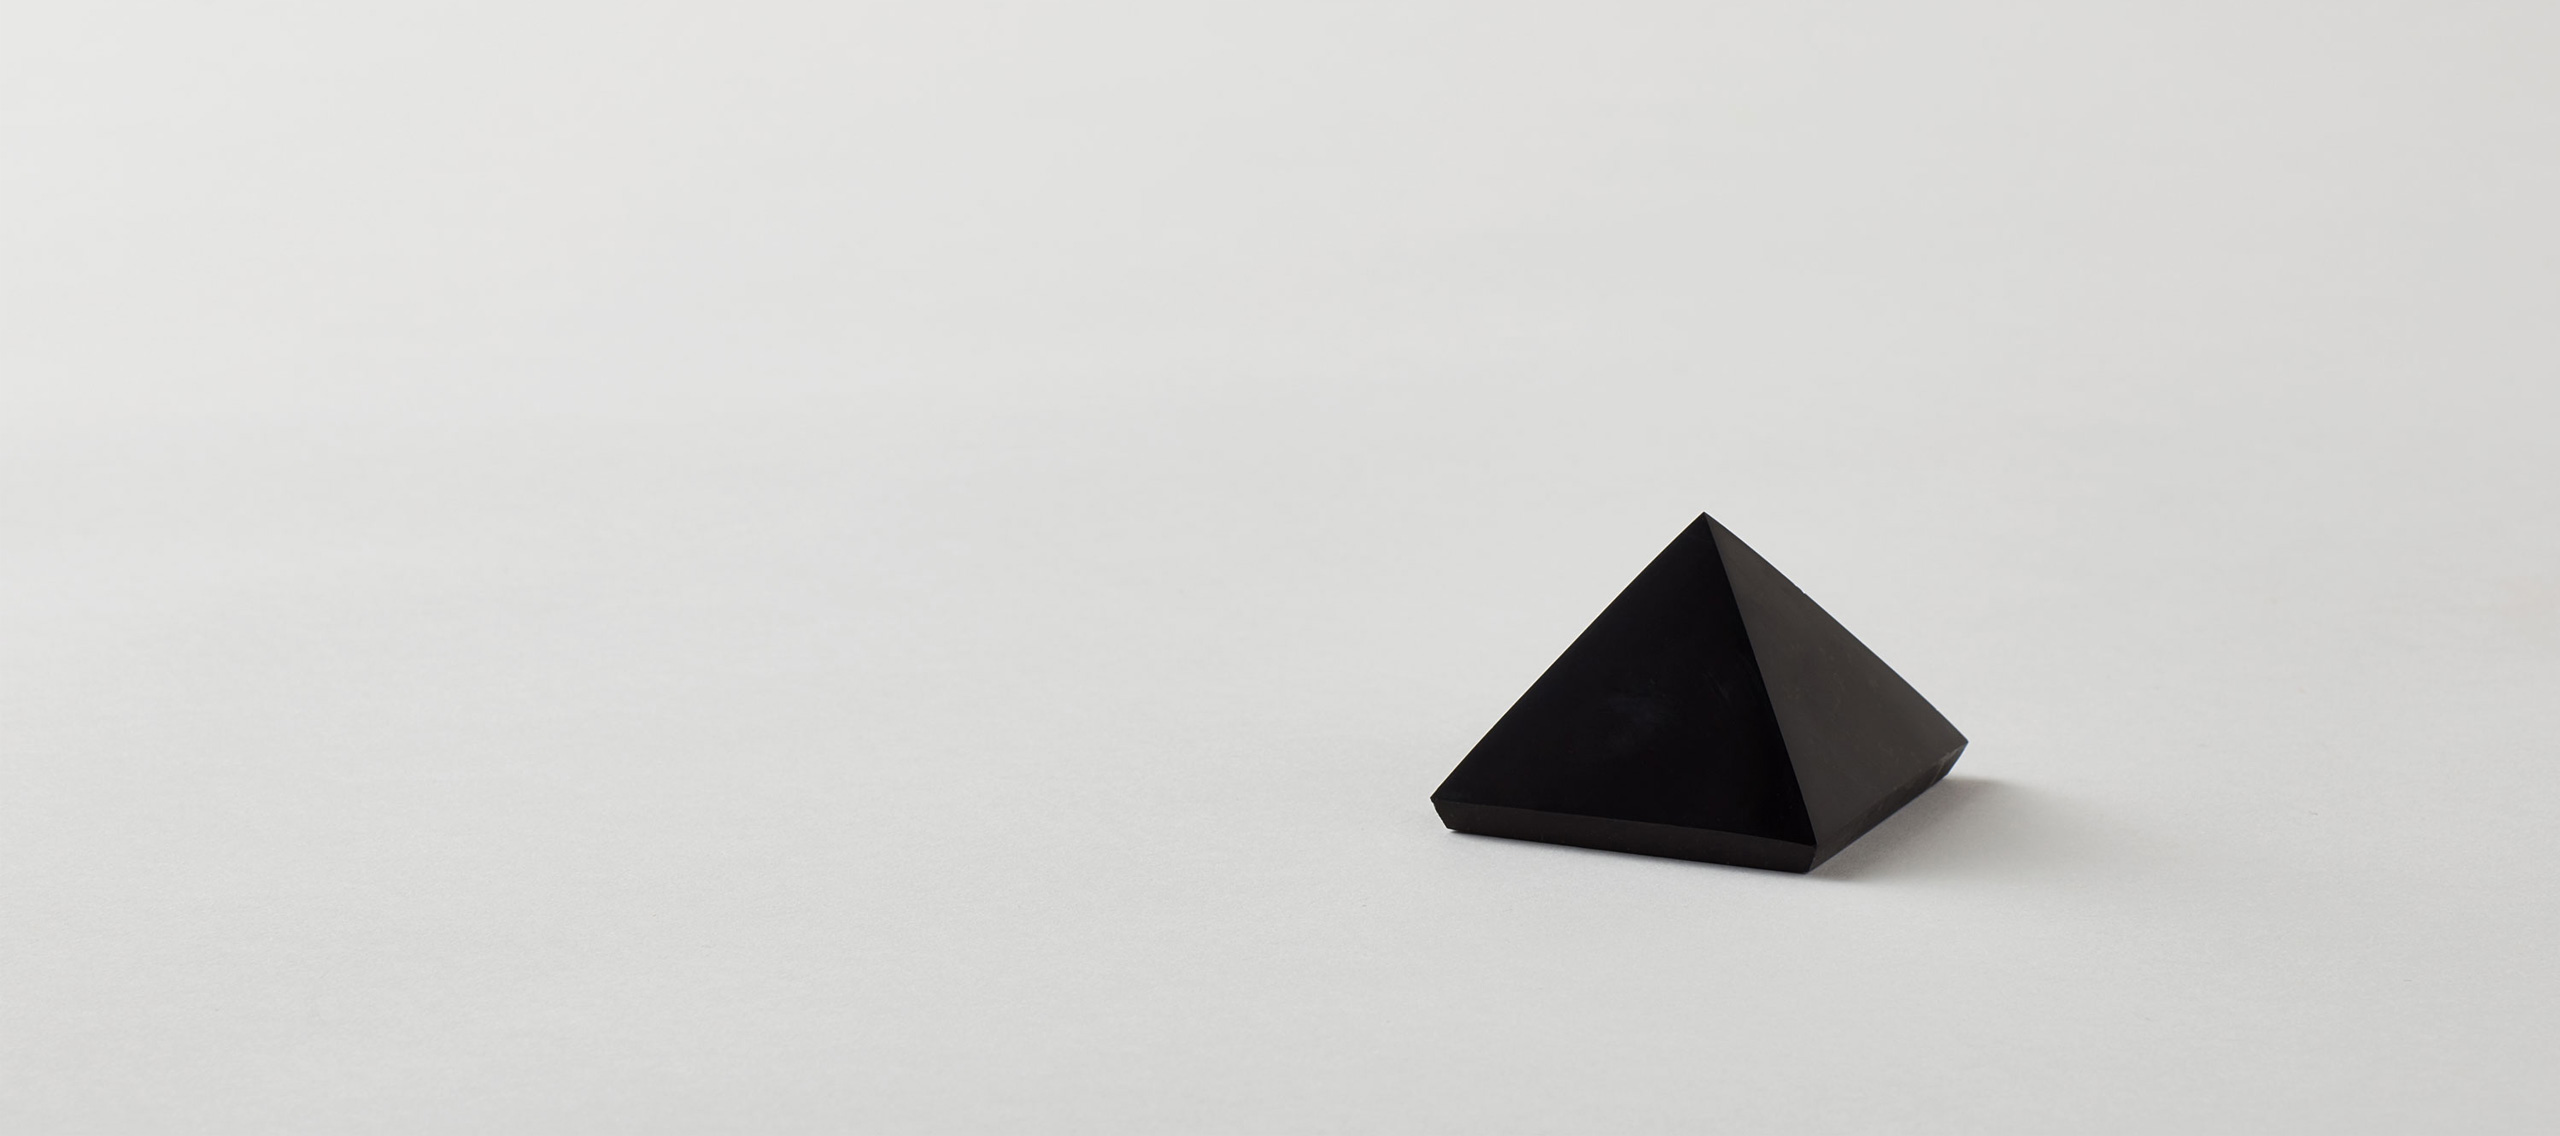 How to Use This Shungite Pyramid for Protection and Balance